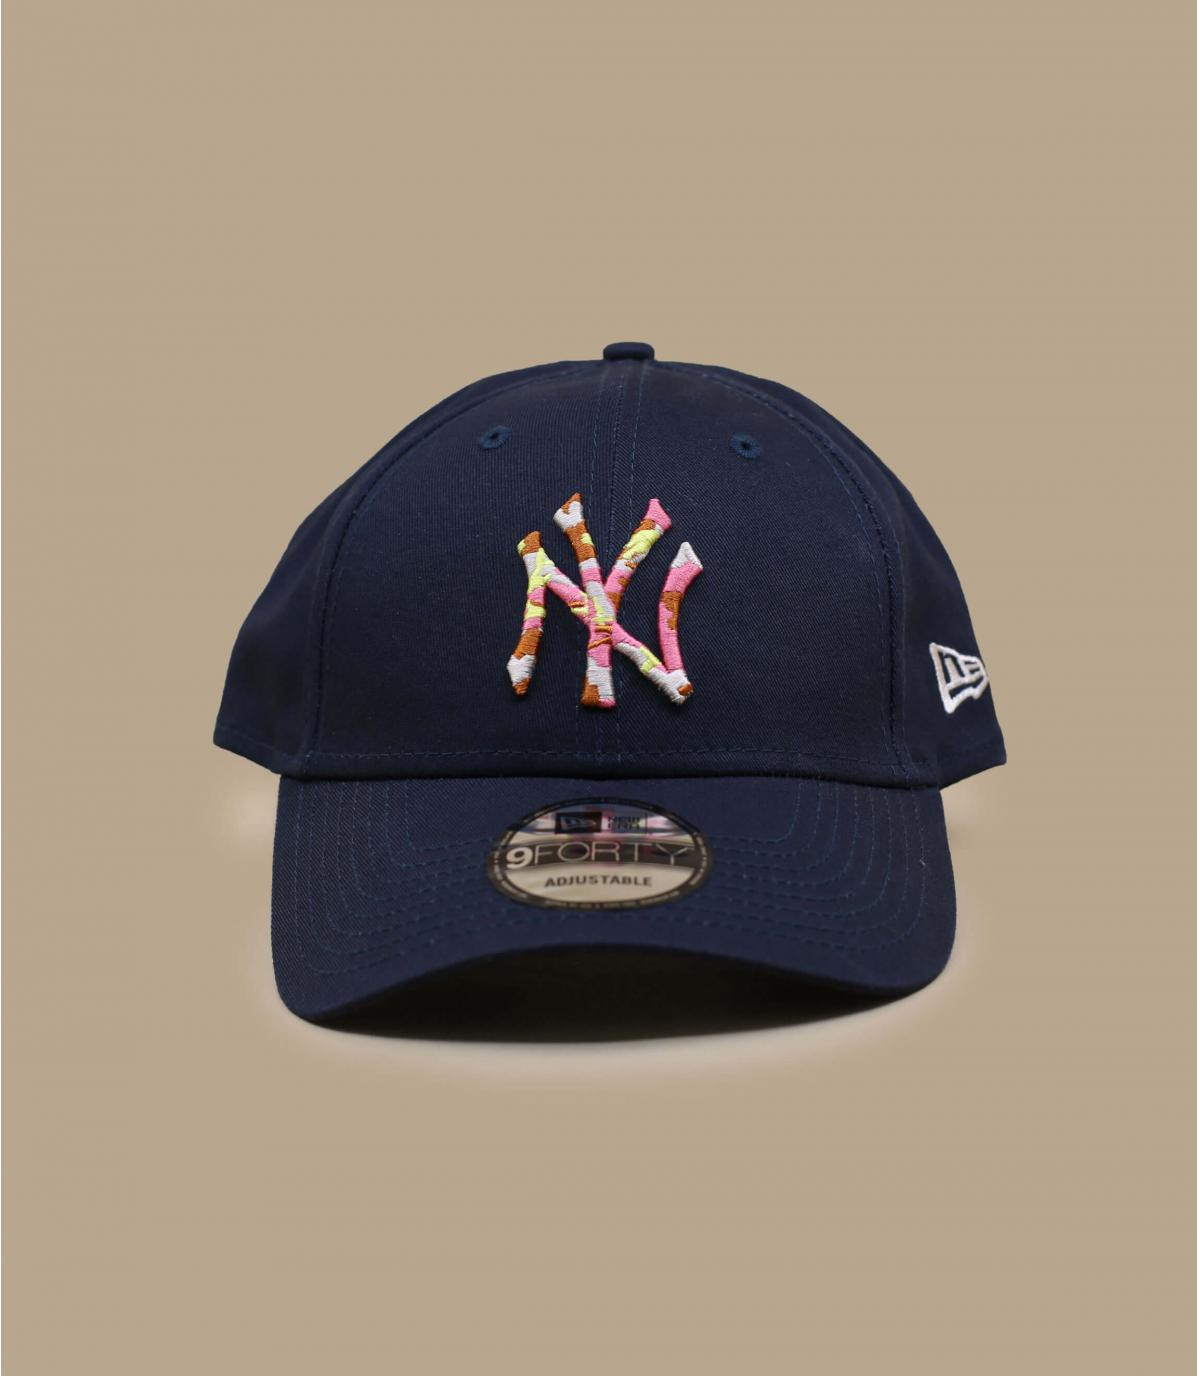 Détails Casquette Infill NY 940 navy - image 2